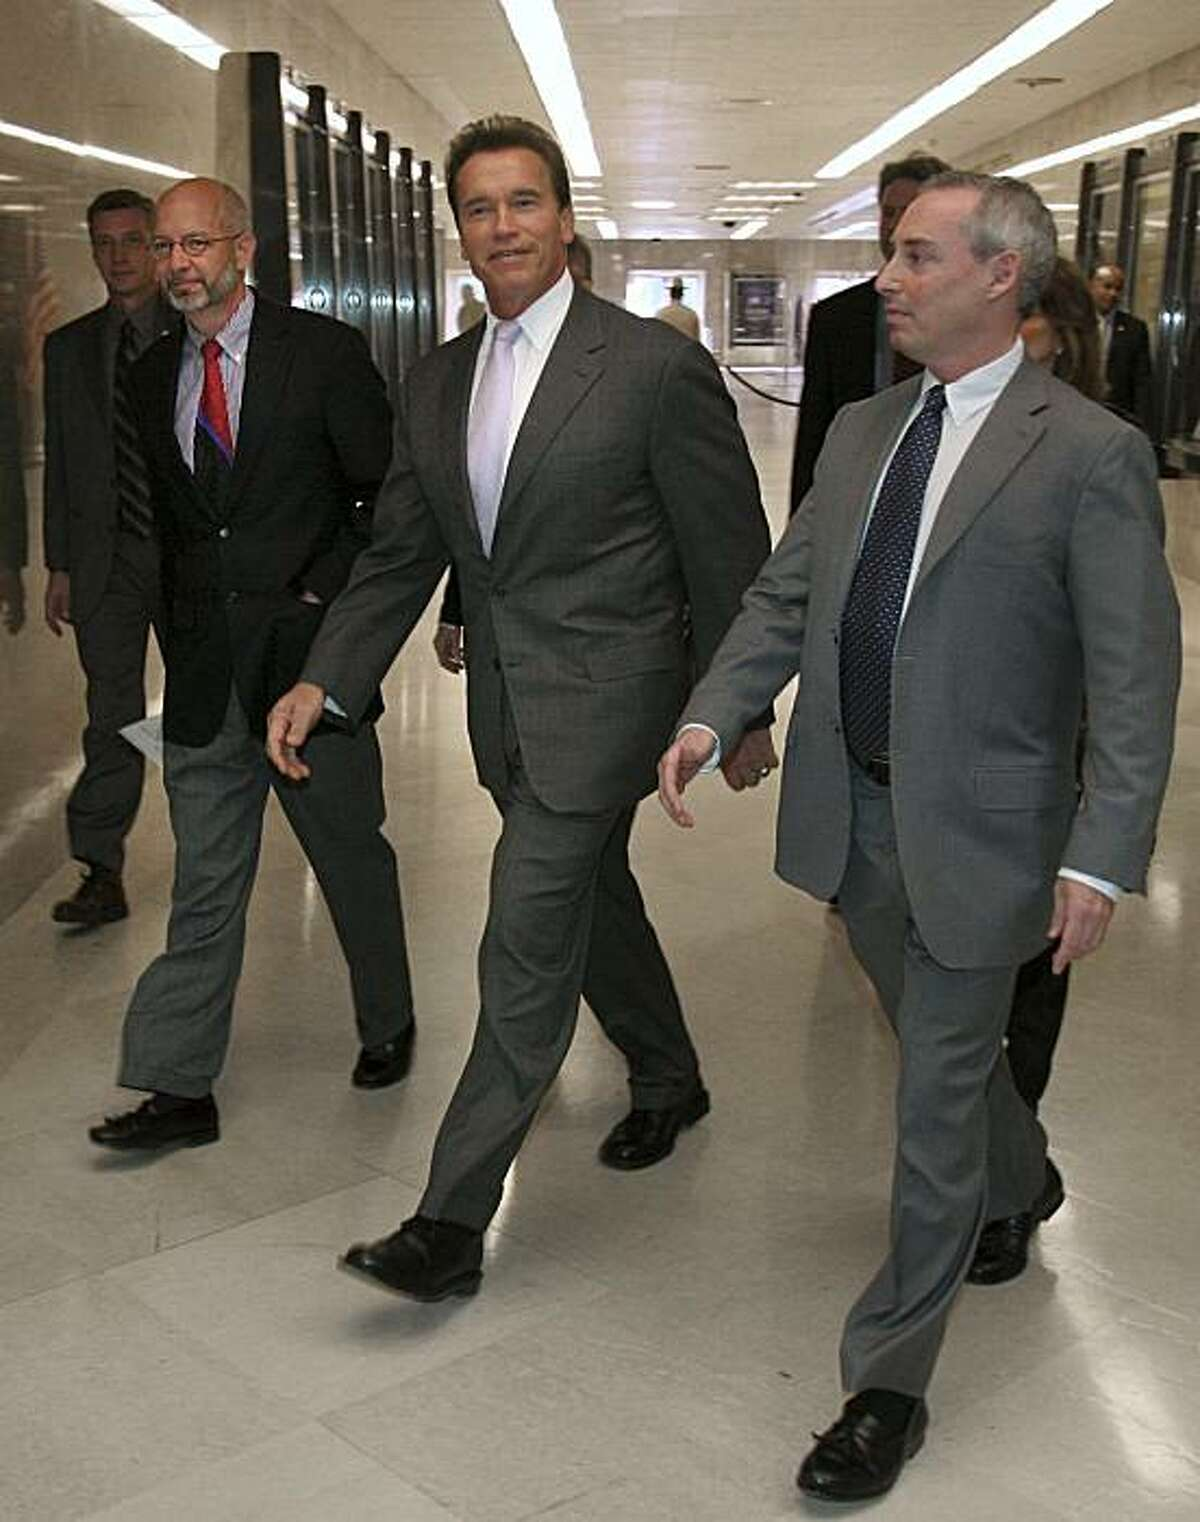 Gov. Arnold Schwarzenegger, center, walks to a Capitol news conference where he discussed a proposed redistricting plan, in Sacramento, Calif., Tuesday, Dec. 5, 2006. He is flanked by former state Assemblyman Fred Keeley, D-Santa Cruz, left, and Dan Schnur, former adviser to Gov. Pete Wilson. (AP Photo/Rich Pedroncelli)